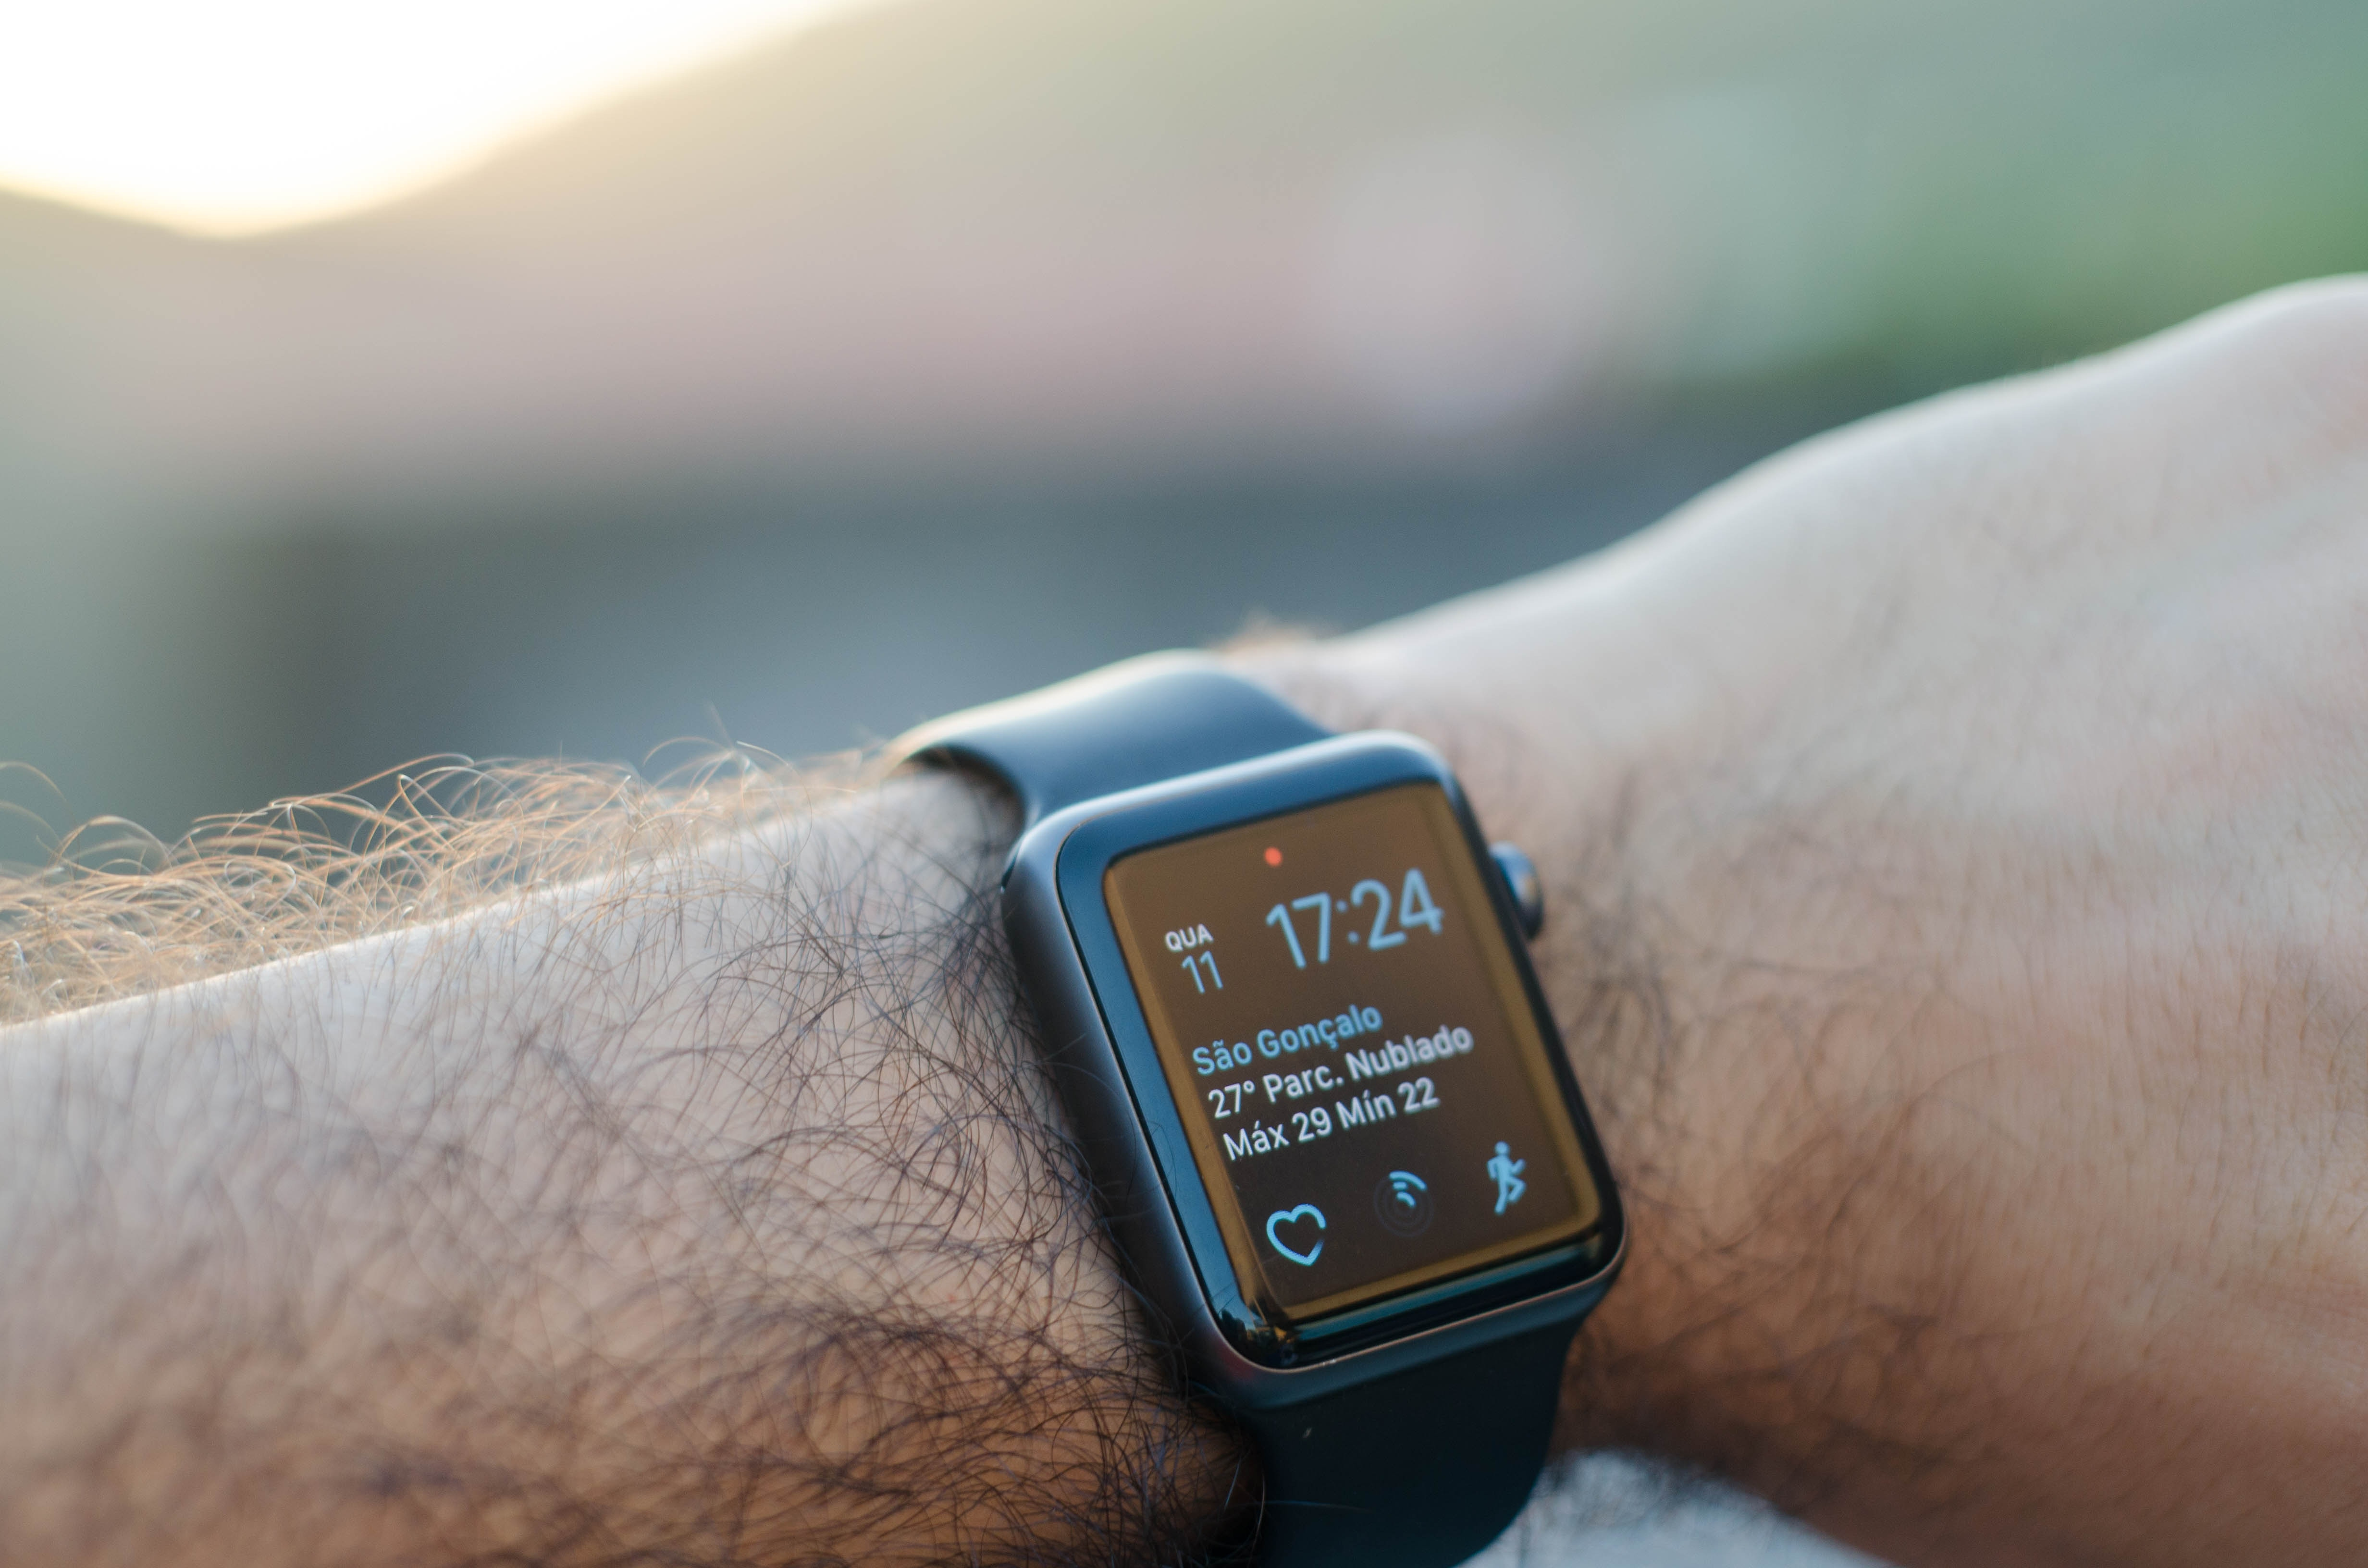 technological advances such as remote health monitoring devices, mobile apps and wearables could help healthcare providers